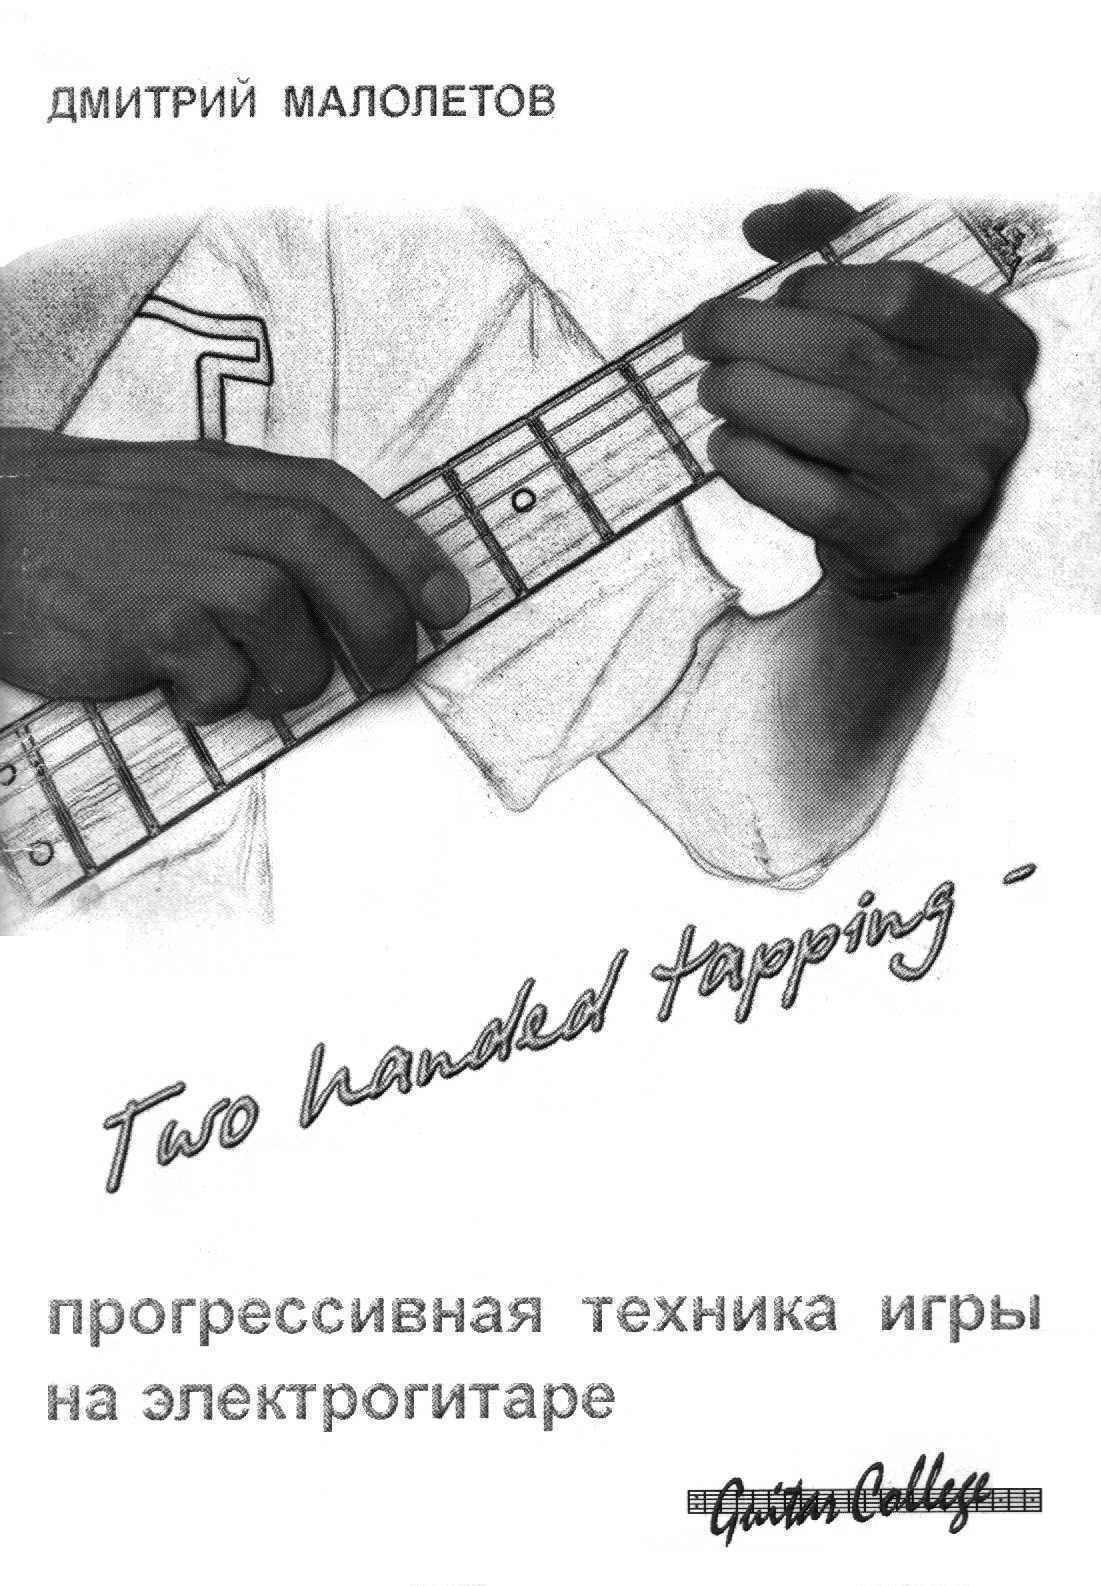 Two handed tapping